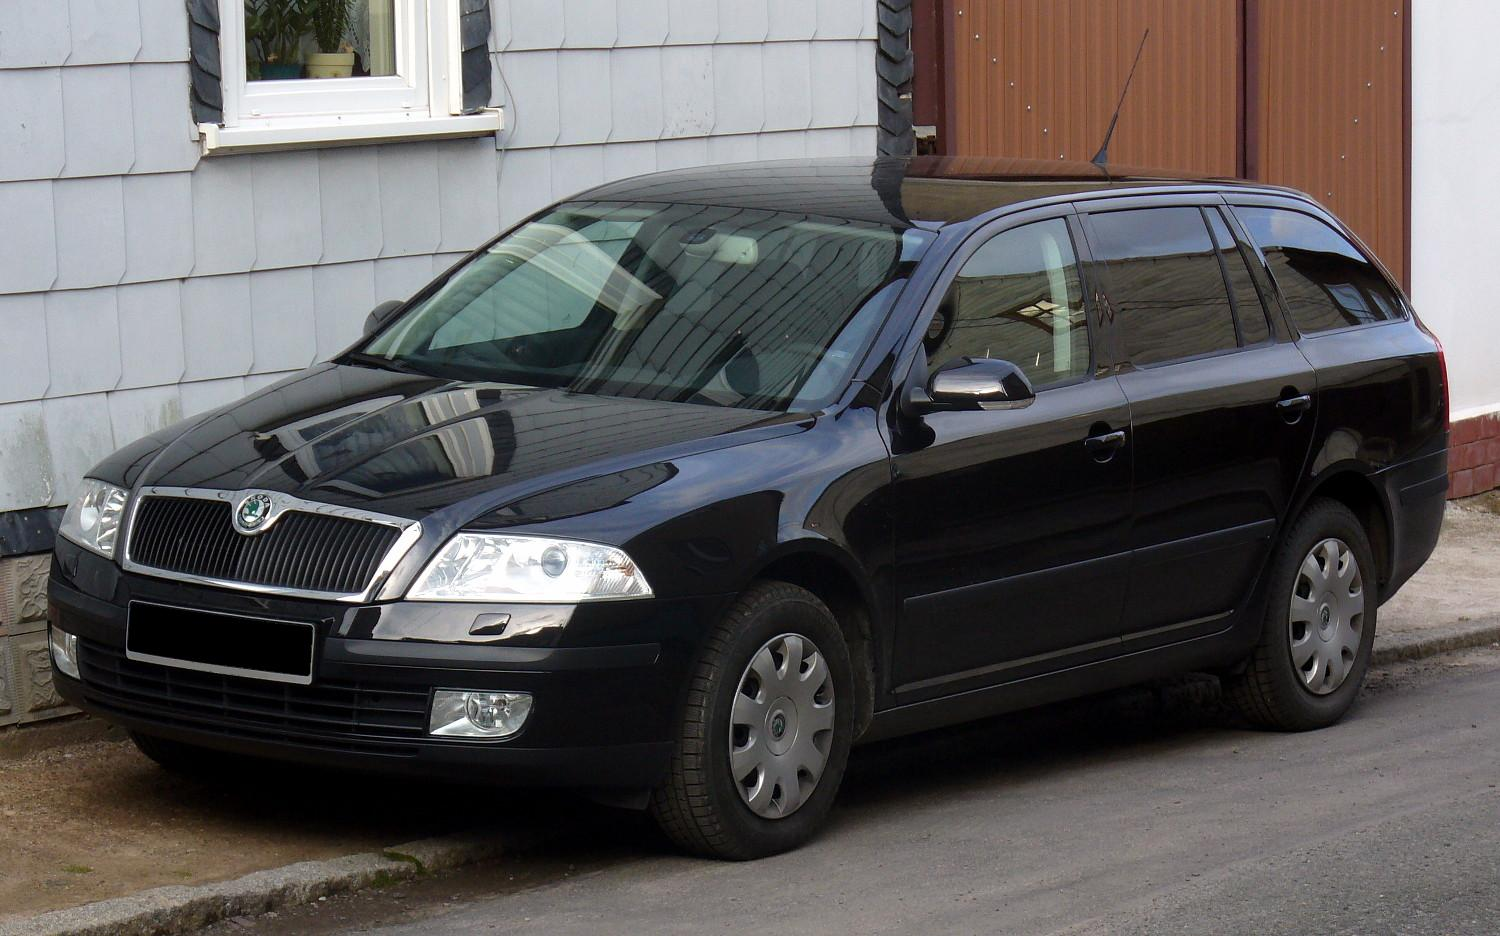 2004 skoda octavia ii pictures information and specs. Black Bedroom Furniture Sets. Home Design Ideas